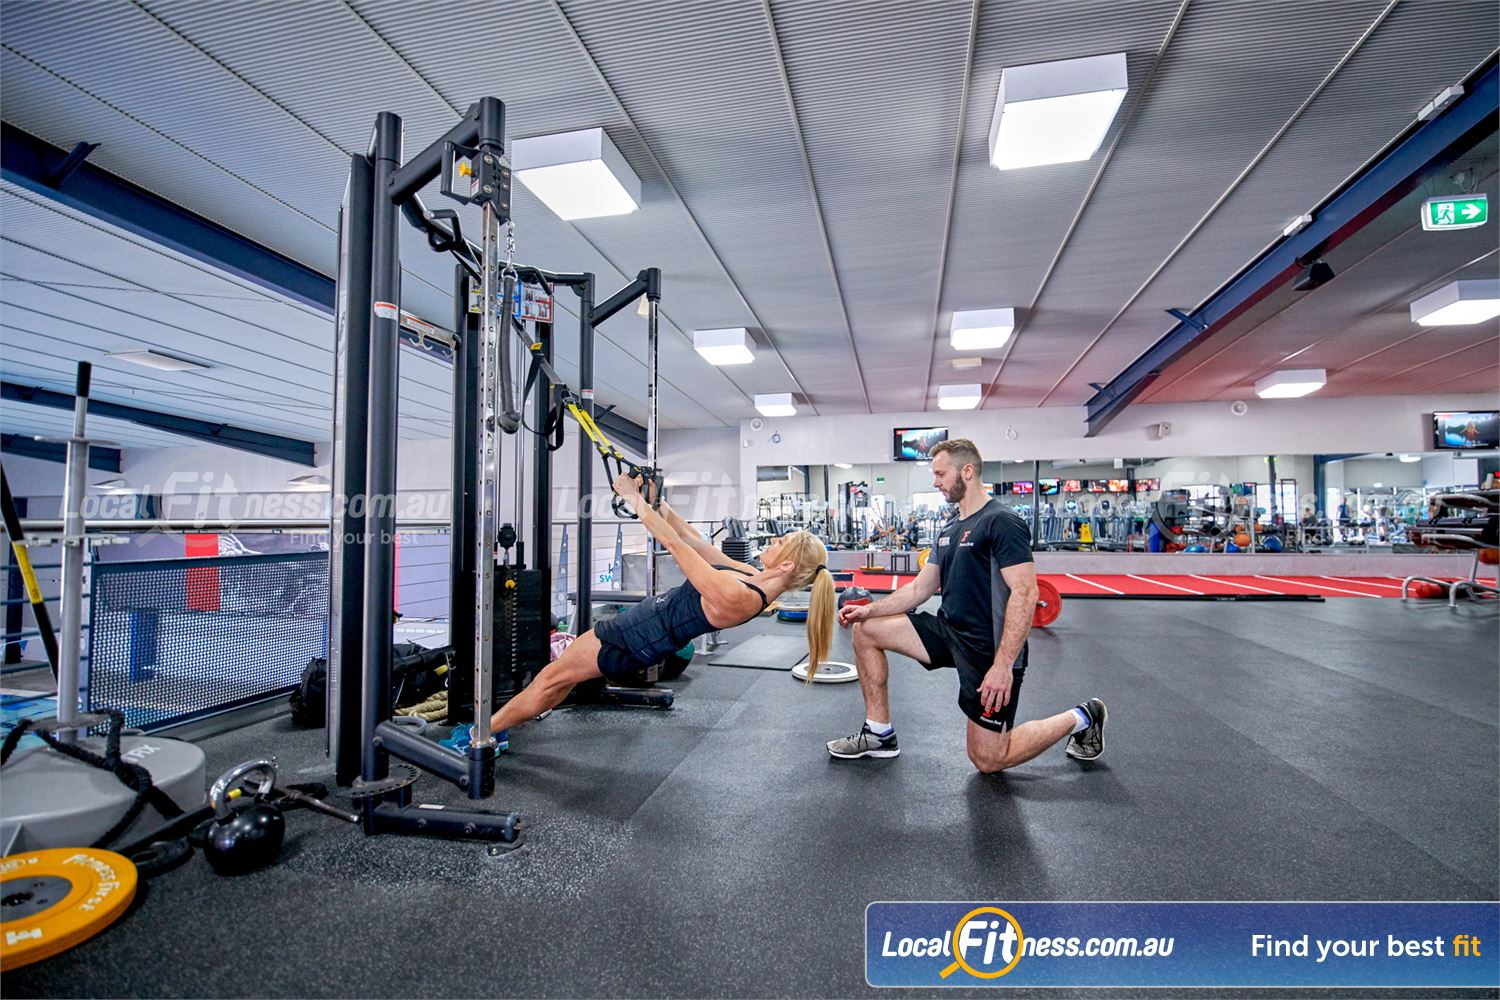 Fitness First Bayside Highett Our bayside gym team can help improve your core and stability with TRX training.